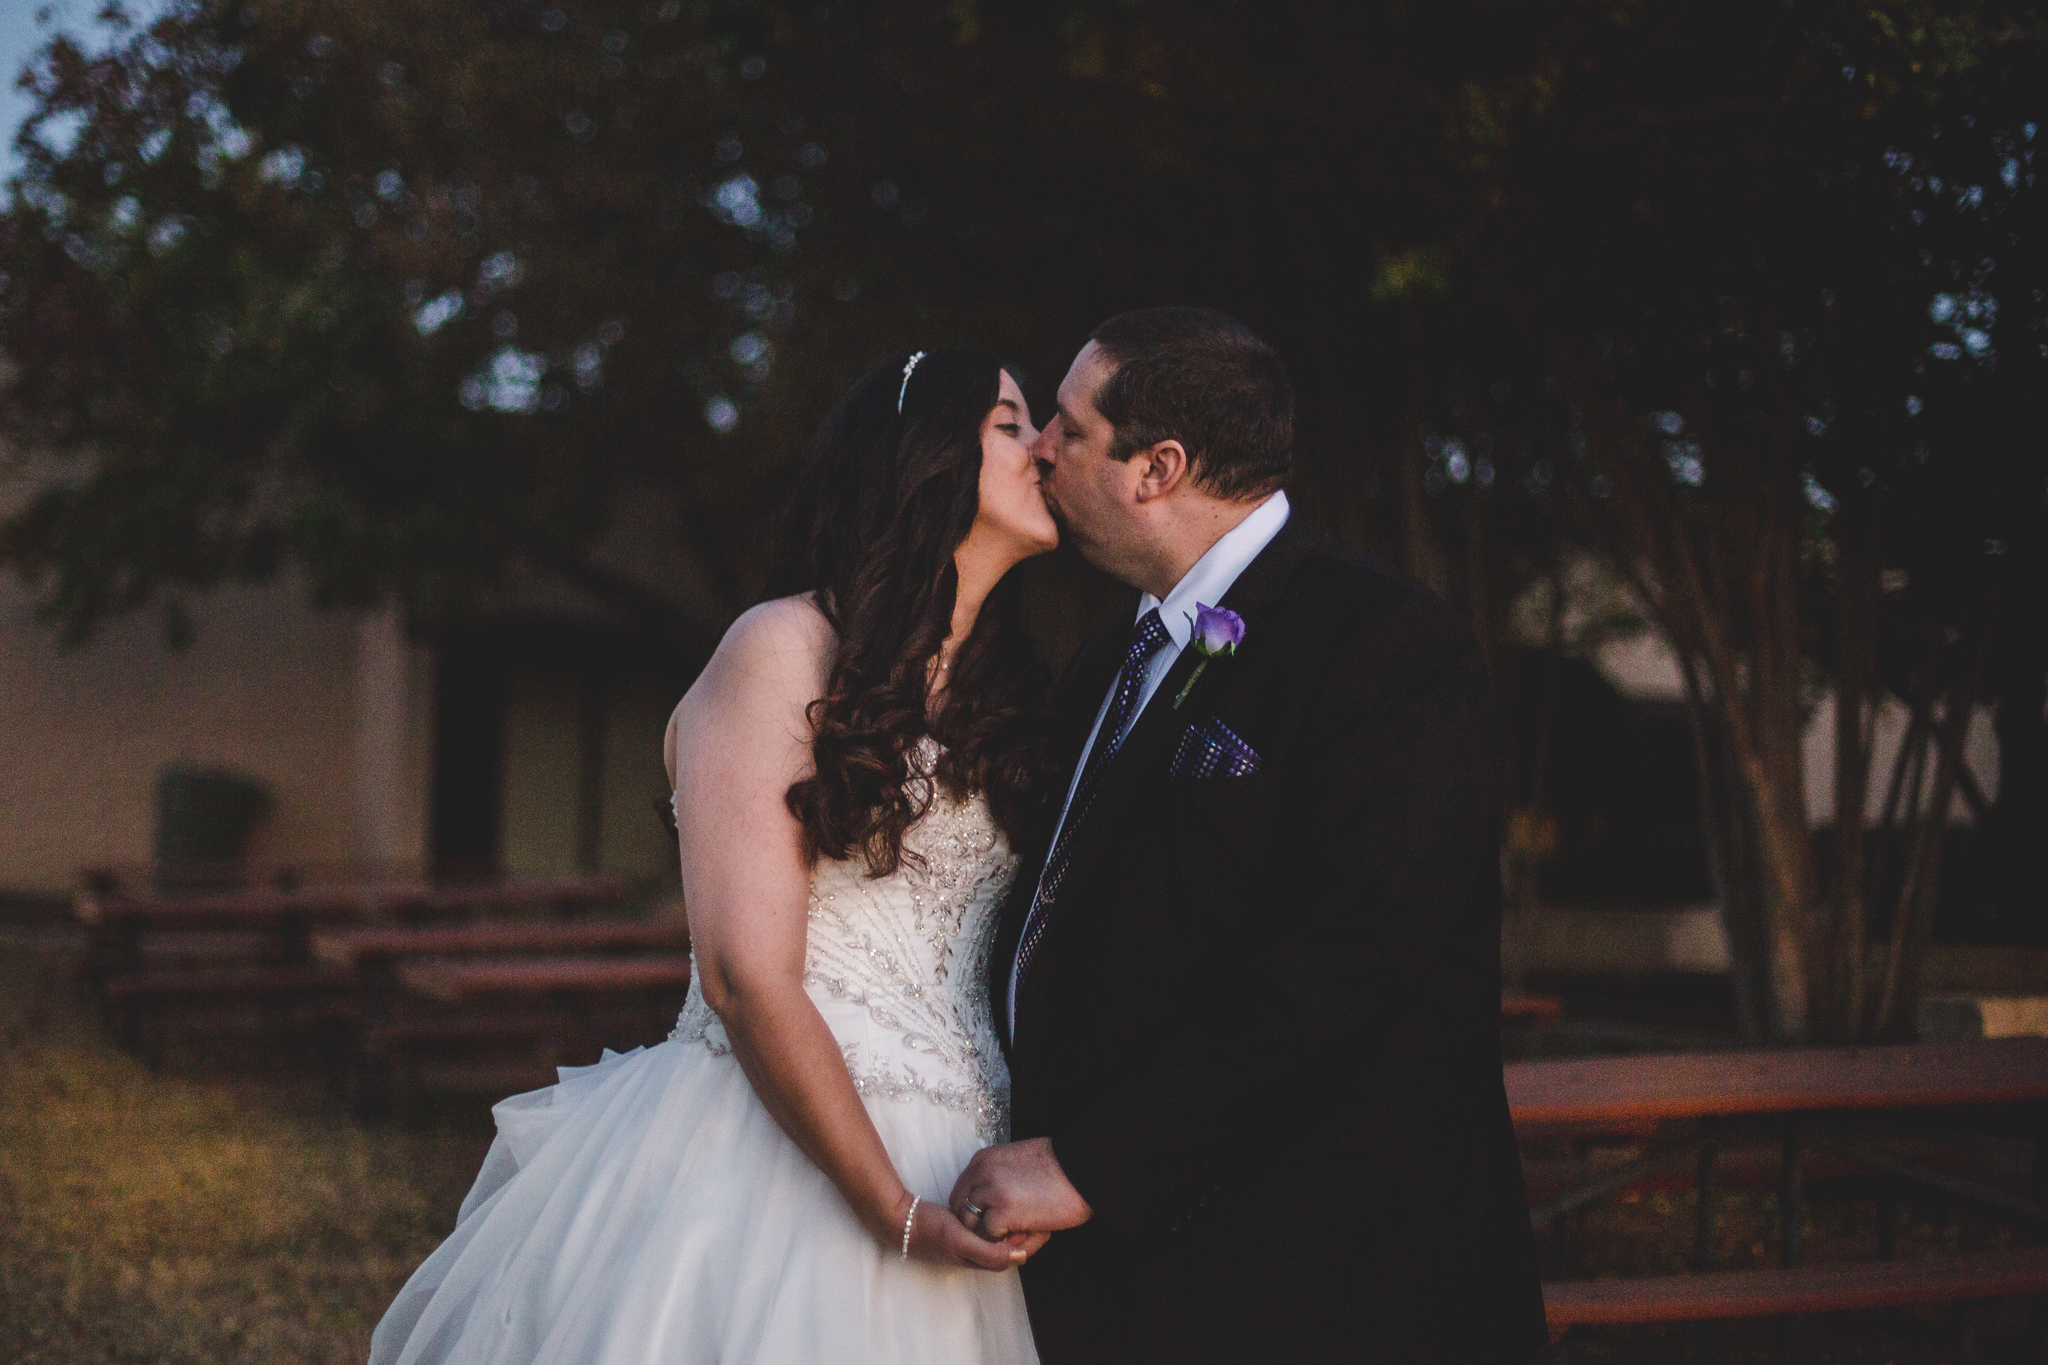 rs bride and portrait groom kiss outside at night